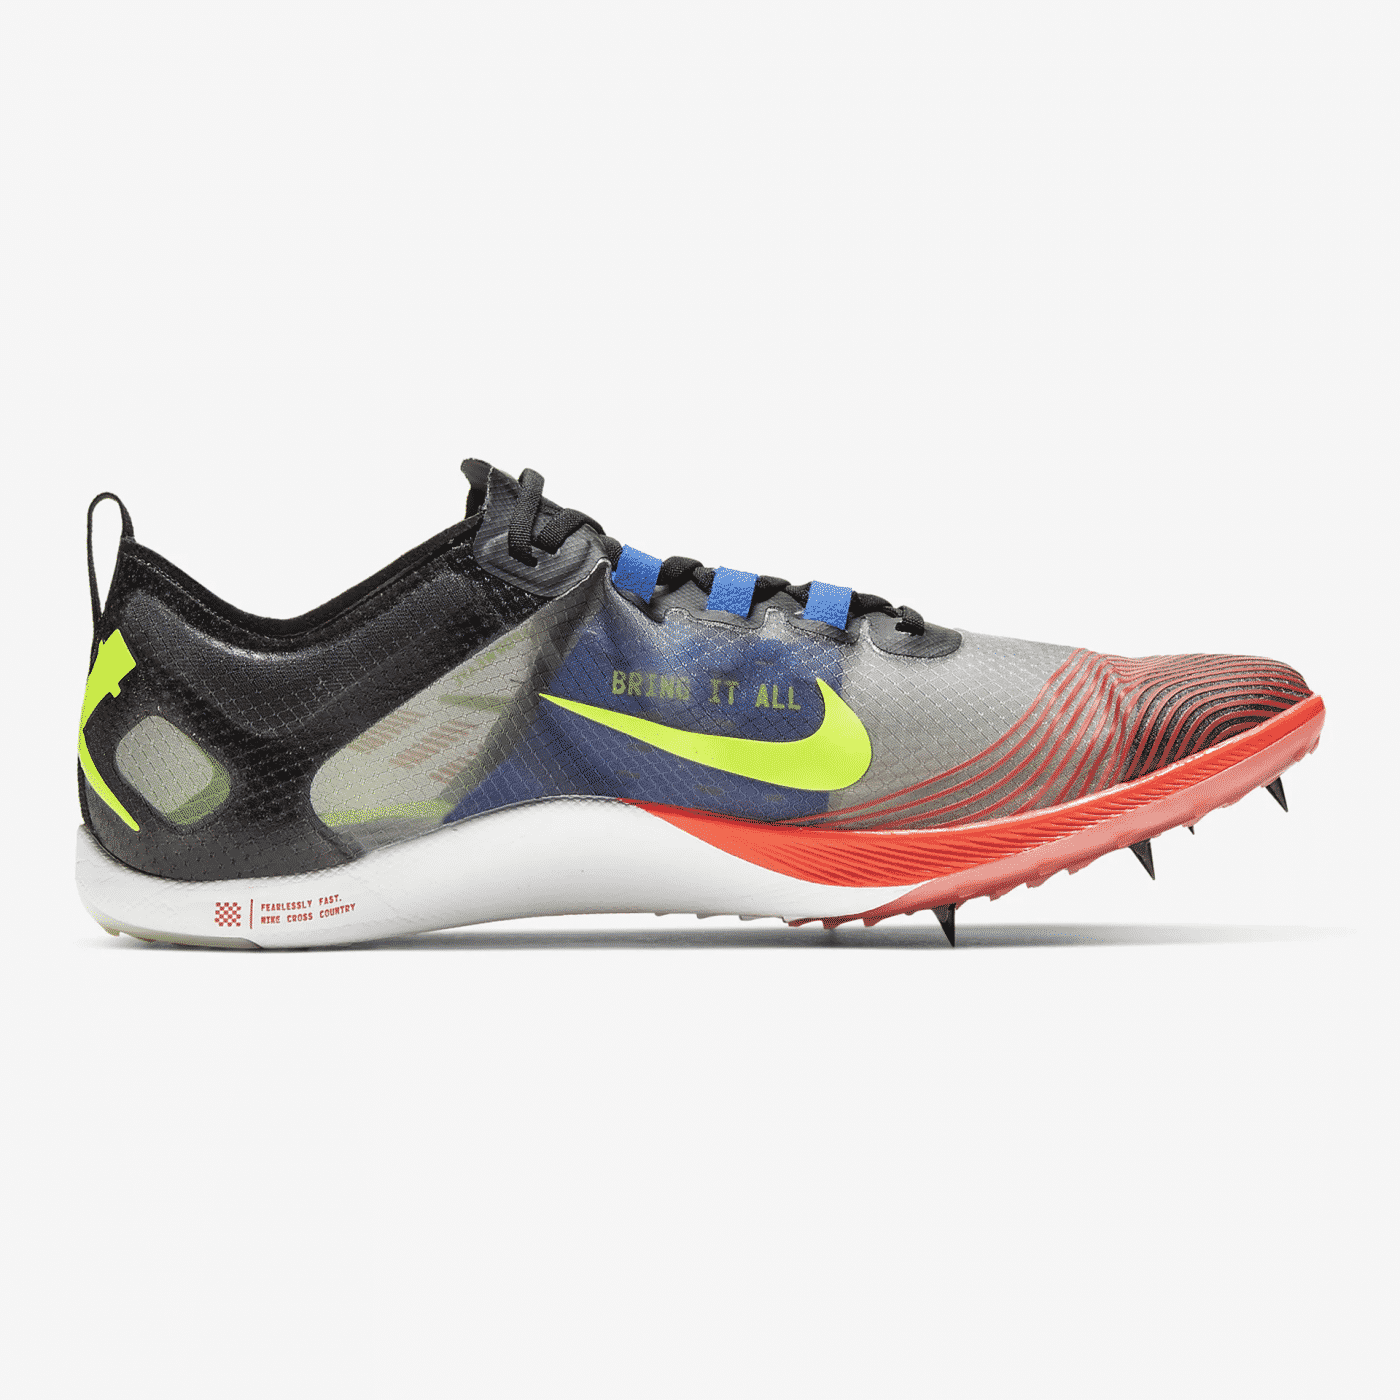 nike_pointes_cross_zoom_victory_XC_5_7